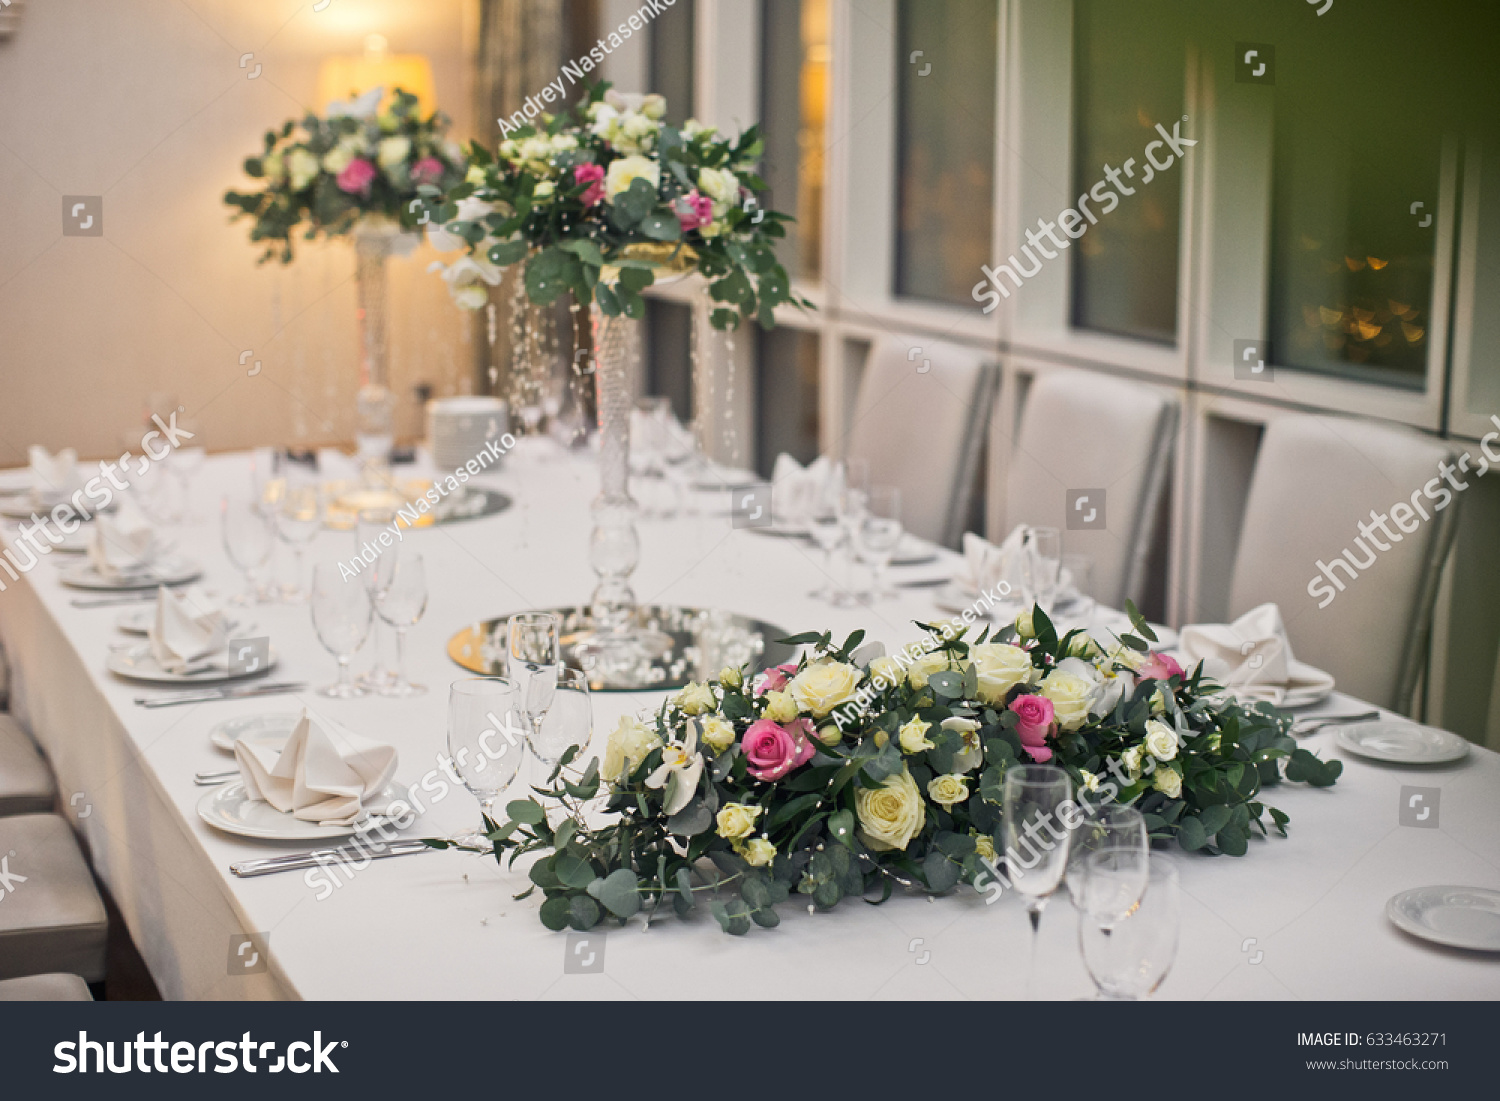 Bouquets Of Pink And Yellow Roses Lie On White Dinner Table Ez Canvas